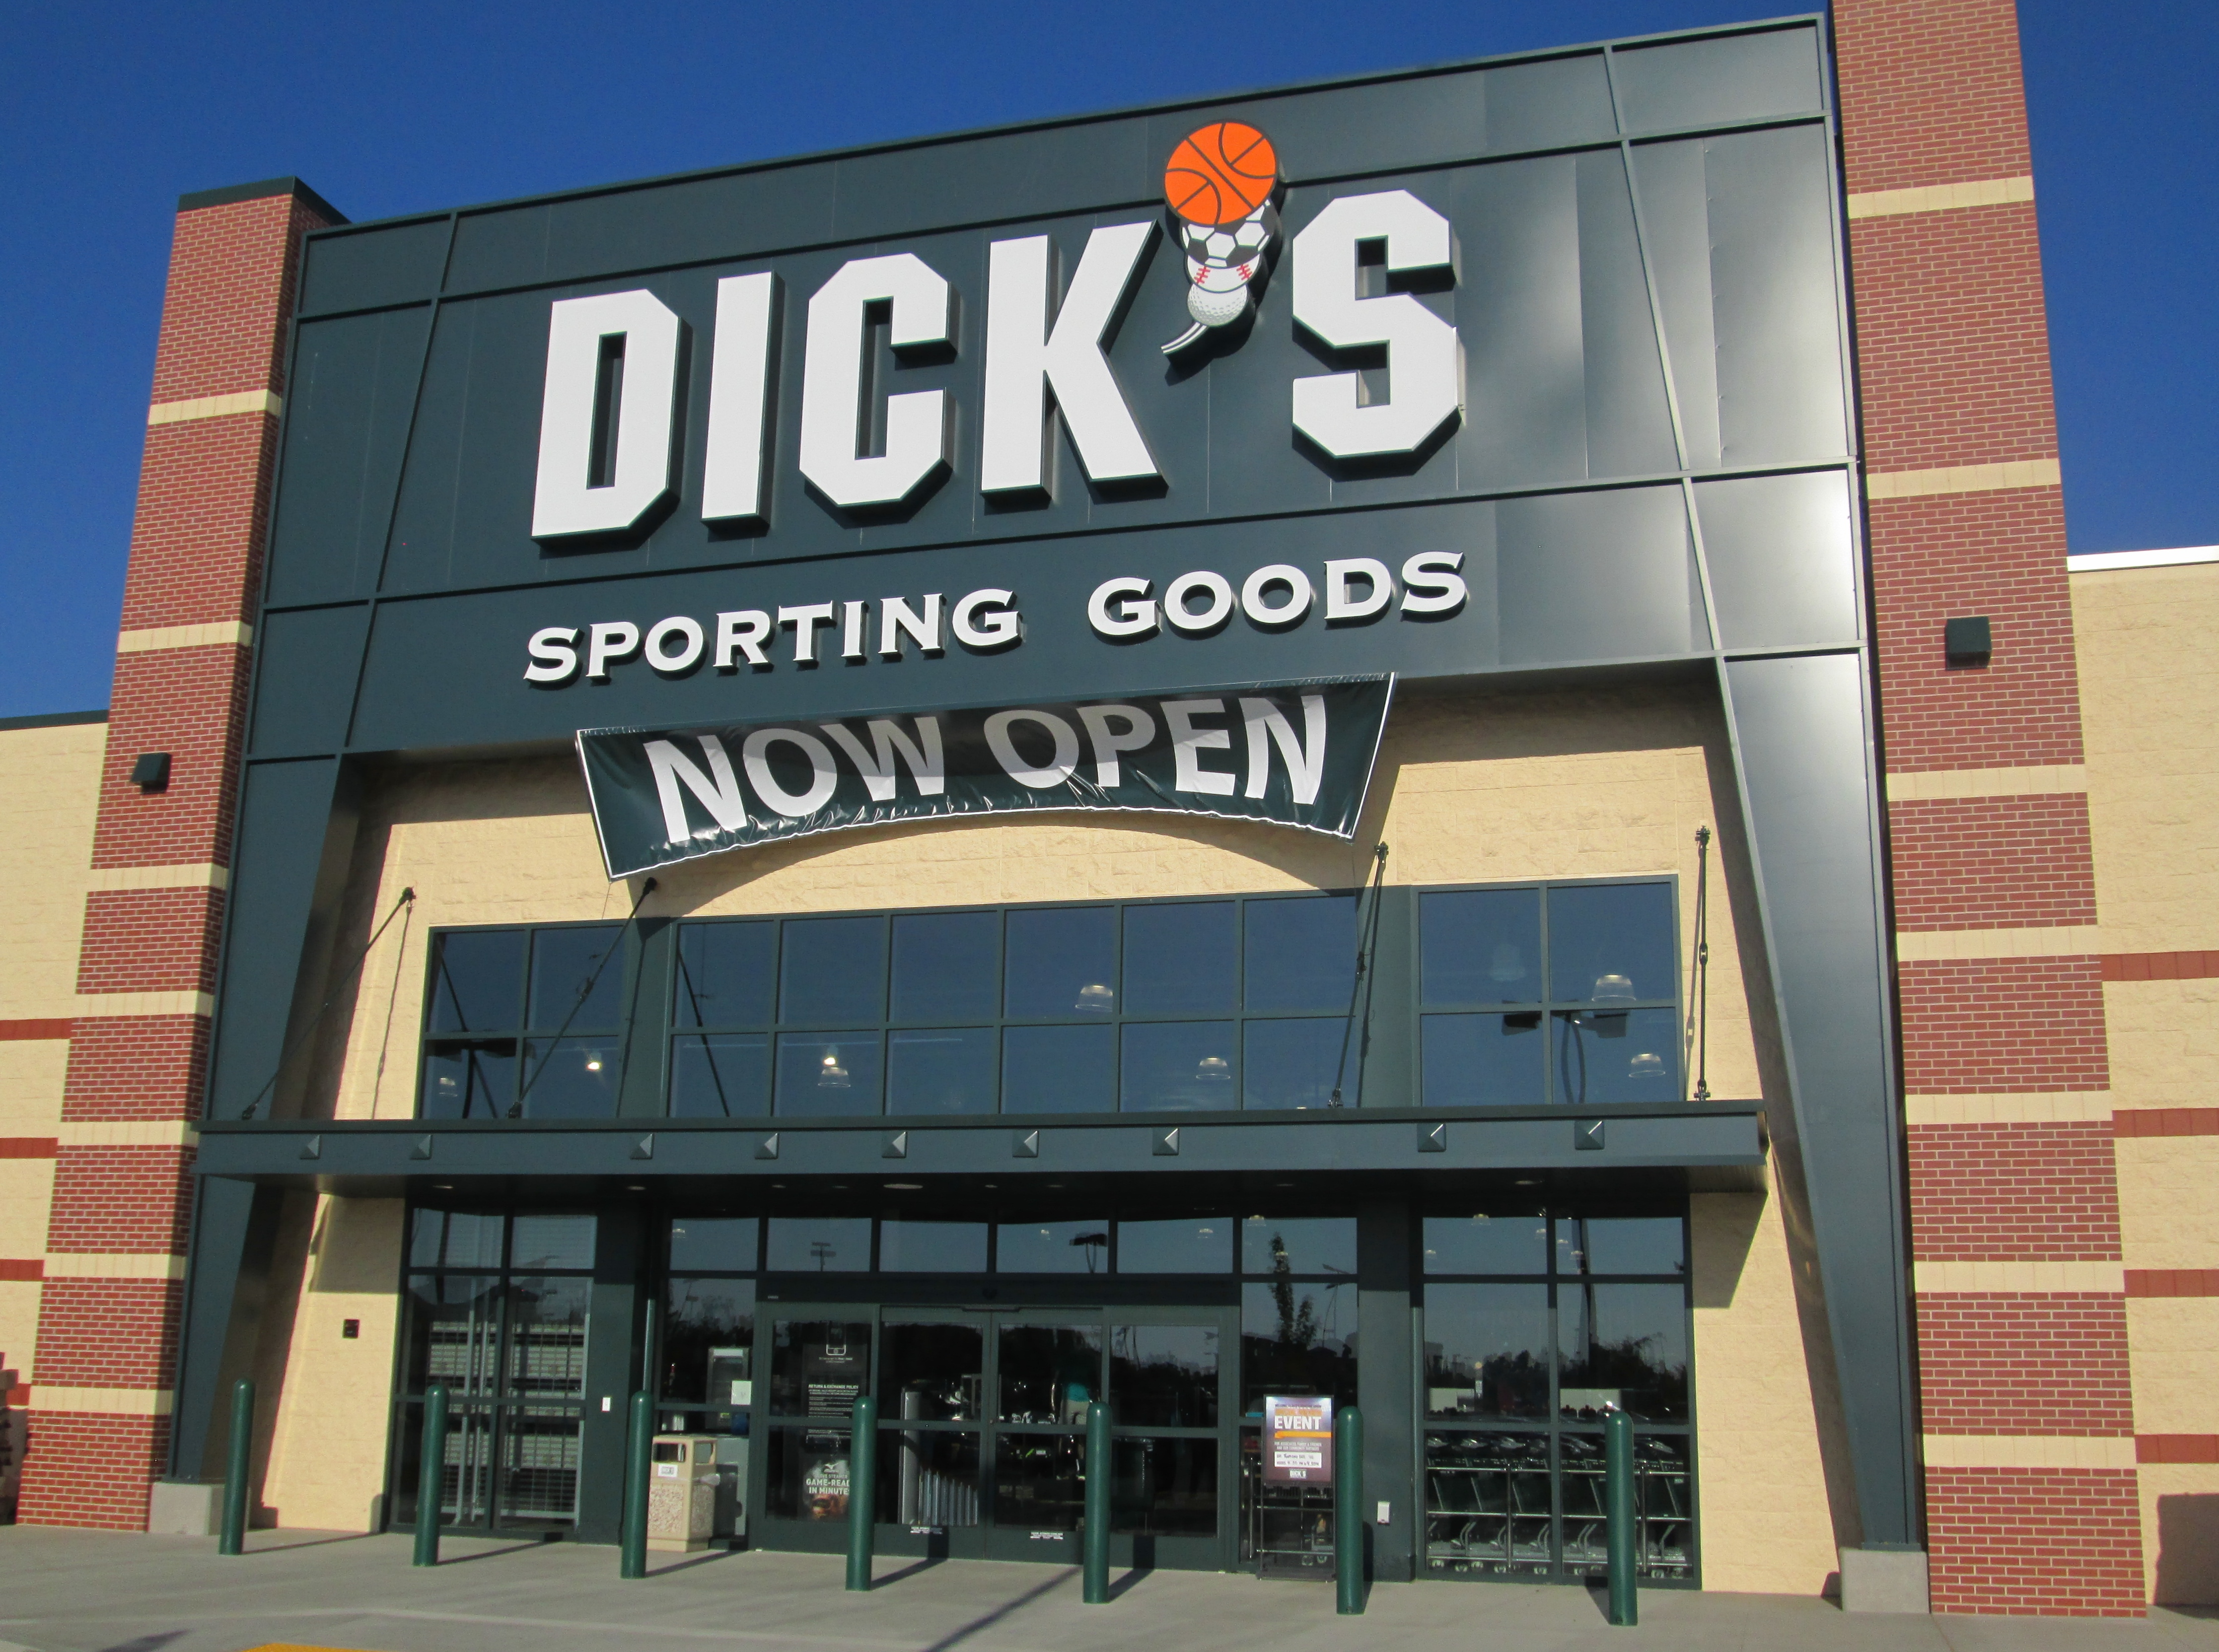 Store front of DICK'S Sporting Goods store in Lodi, CA